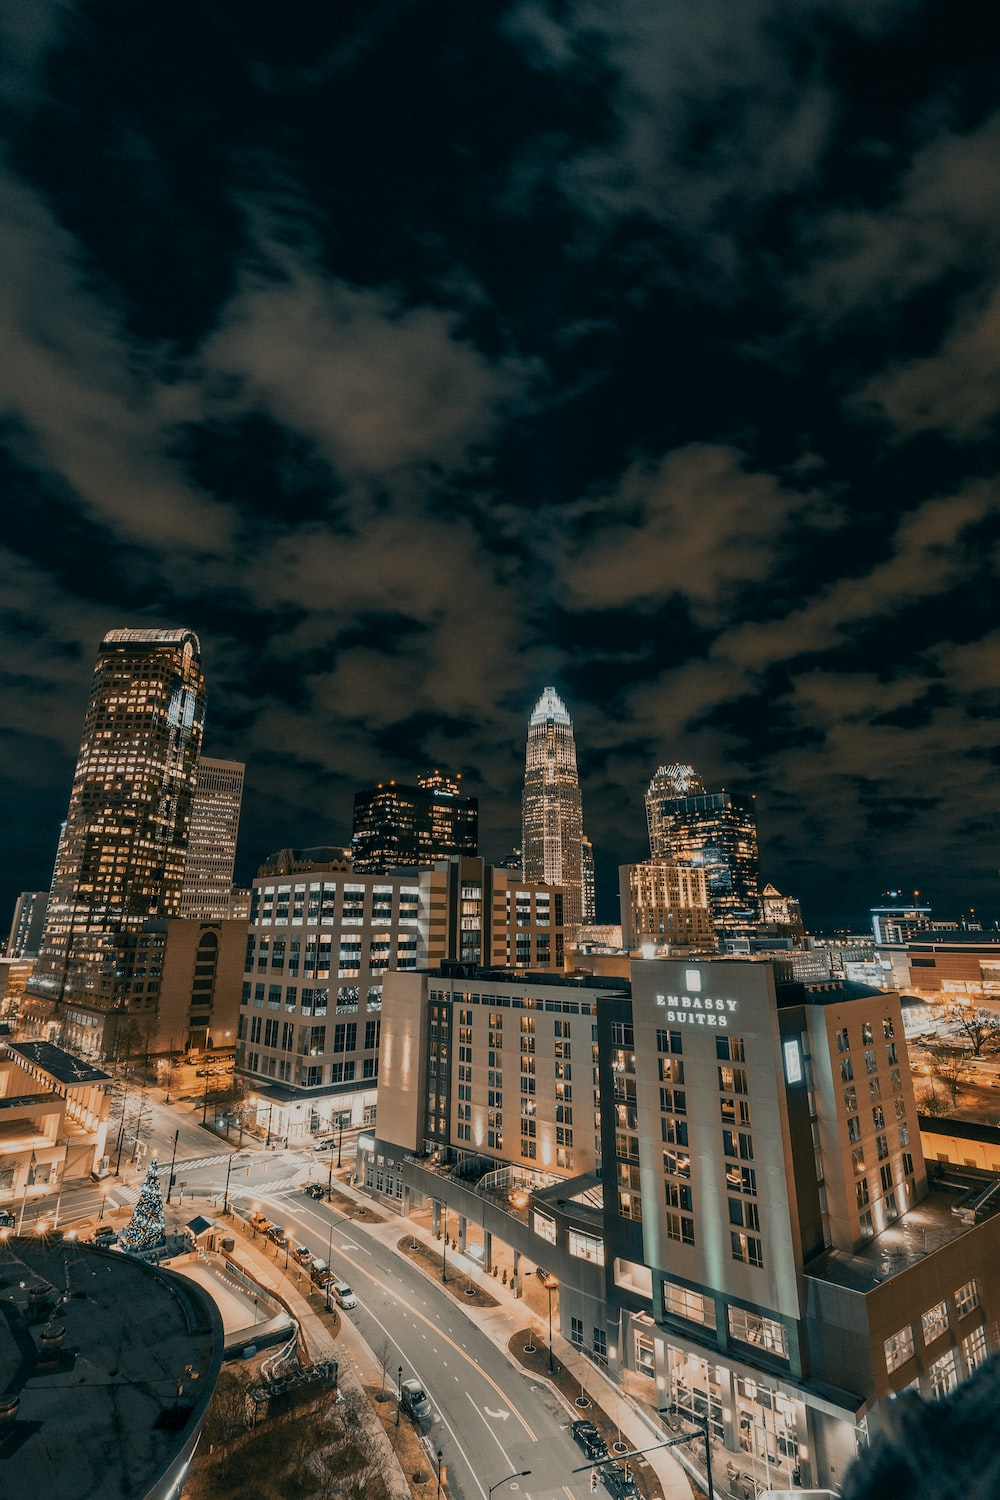 city buildings under dark clouds during night time